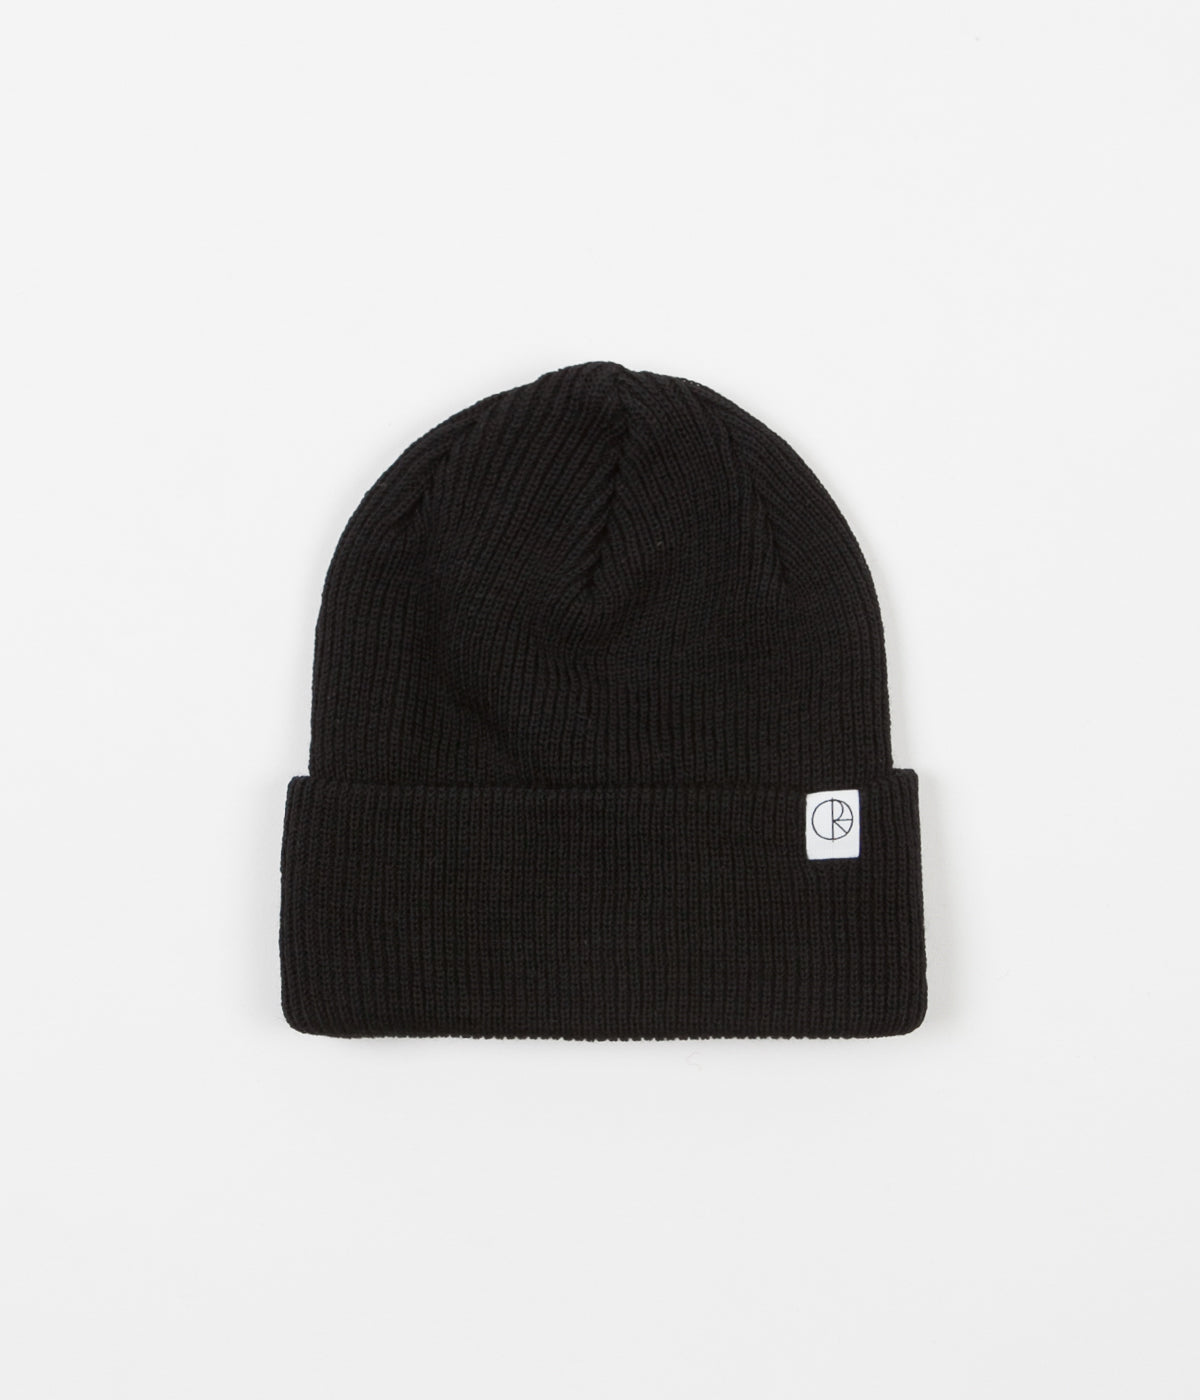 Polar Harbour Beanie - Black